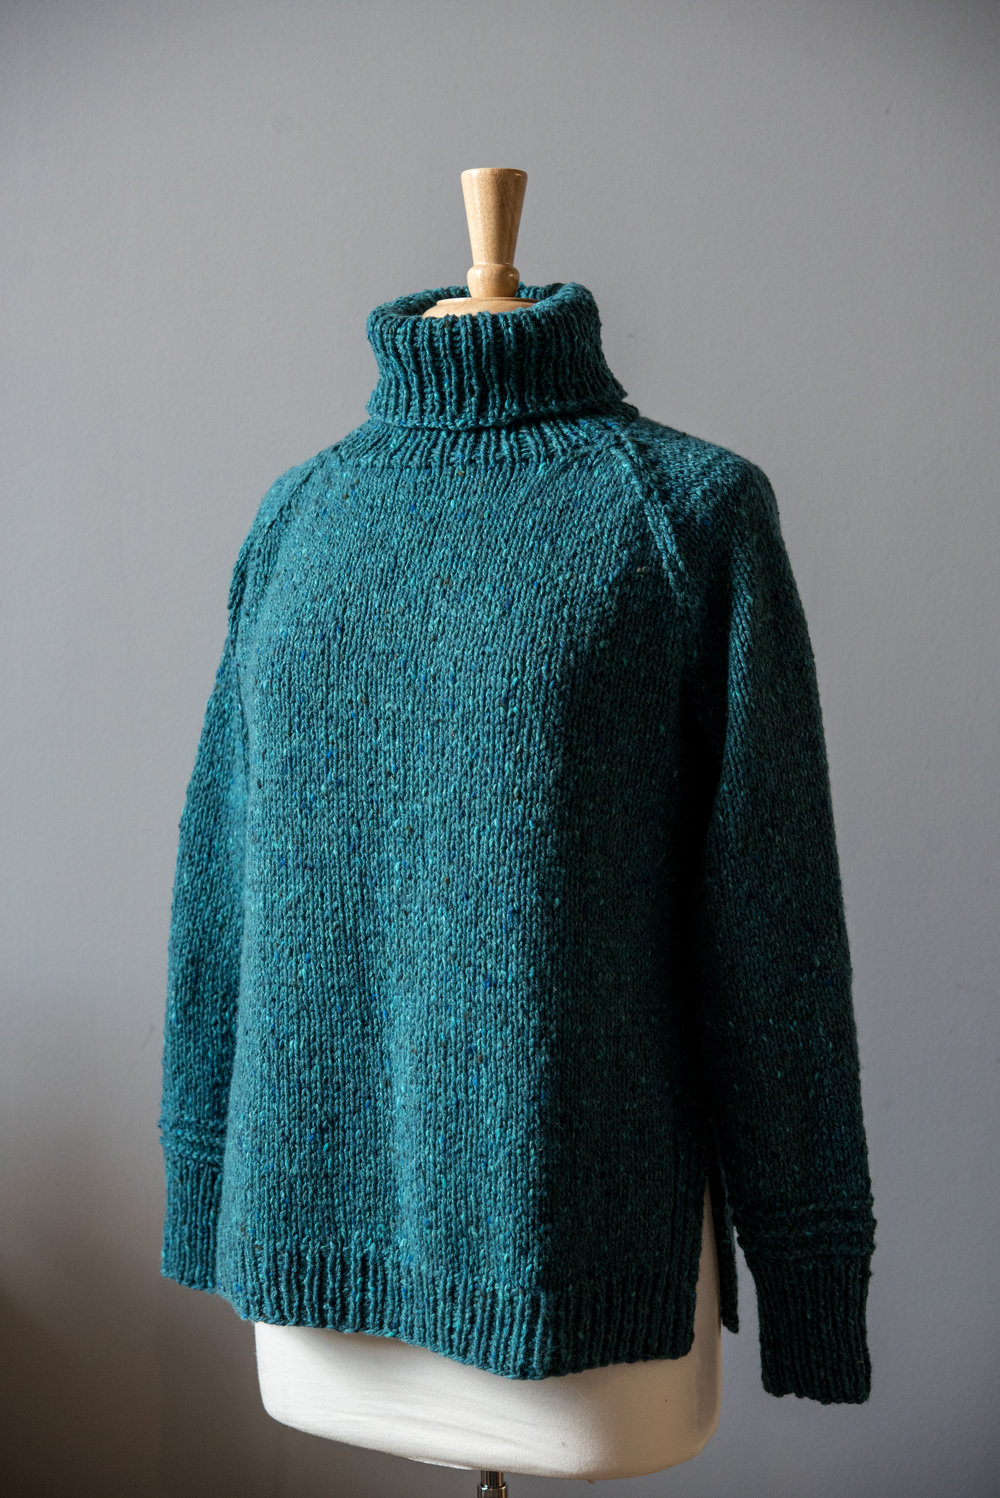 The Fibre Co Arranmore, Carrowkeel sweater